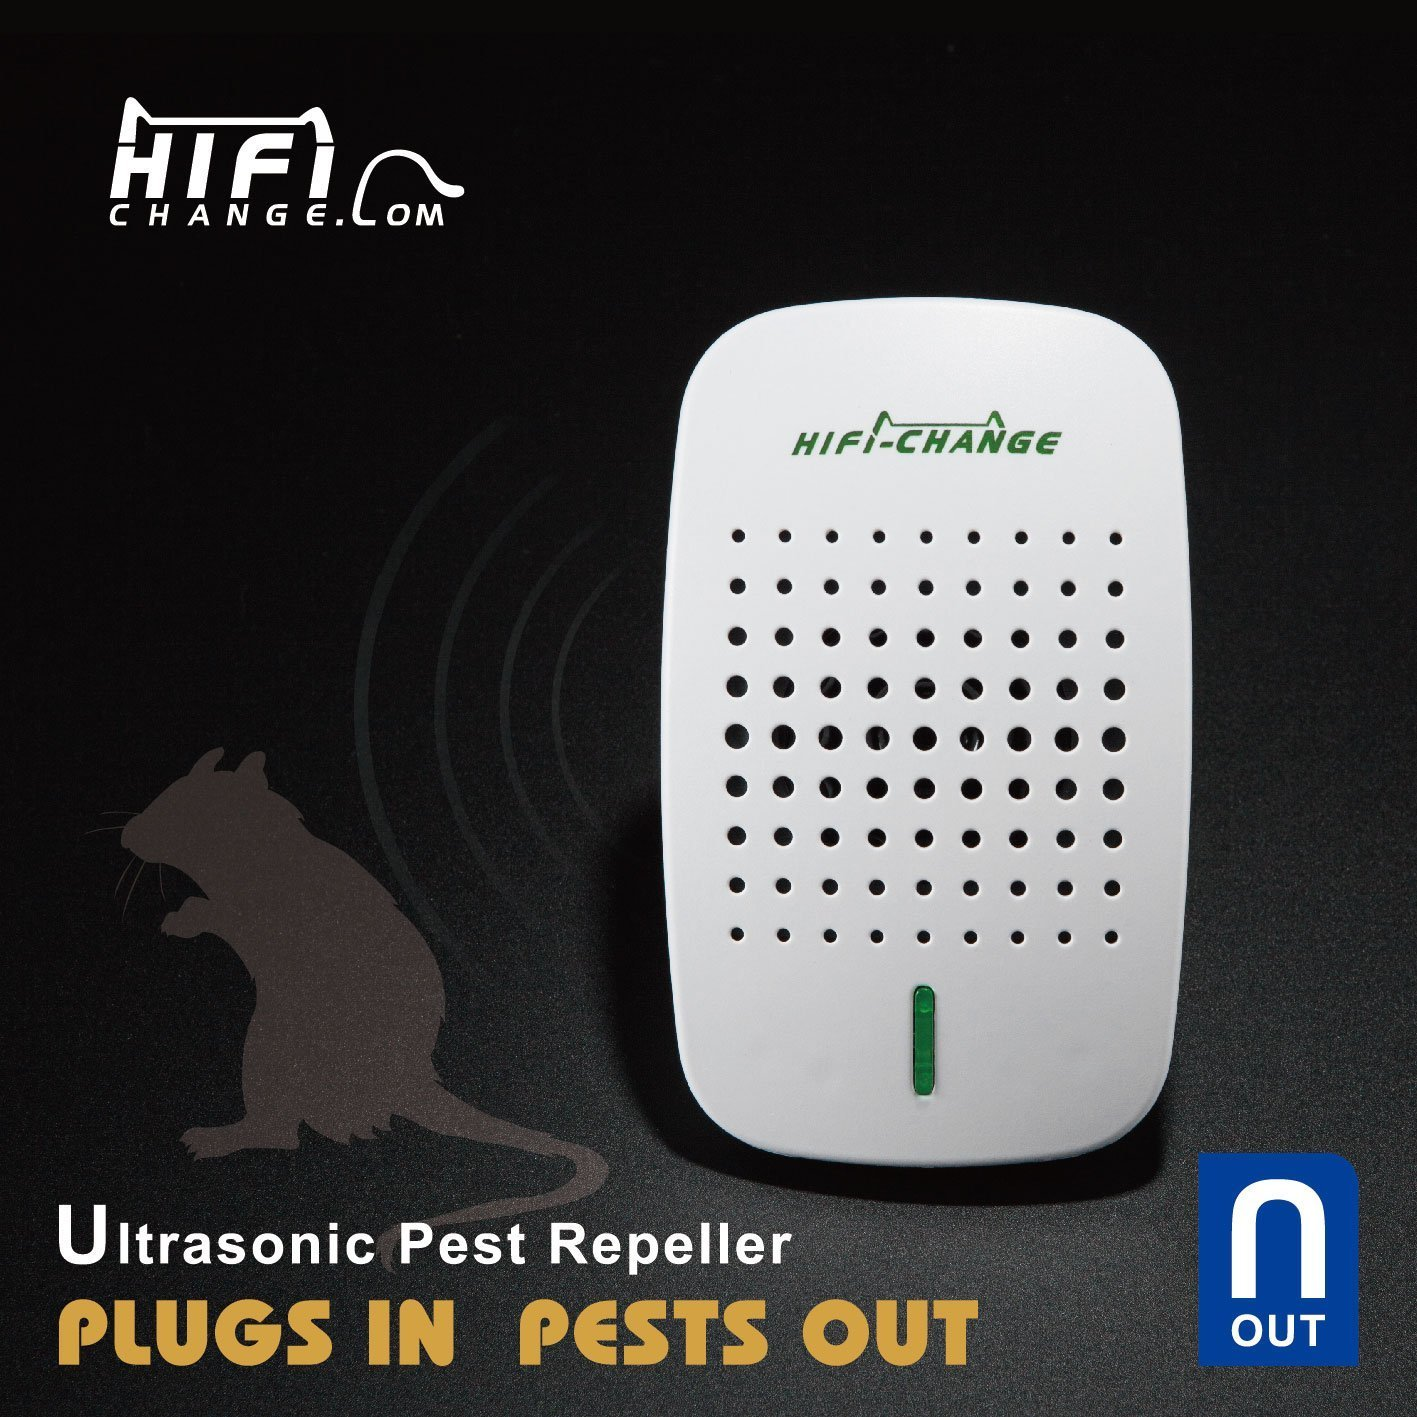 The NEW Ultrasonic pest repeller by Hi-Fi Change | Electronic RODENT & INSECT REPELLER that WORKS - You plug it in, the pests get out - UK Plug KOEPUO